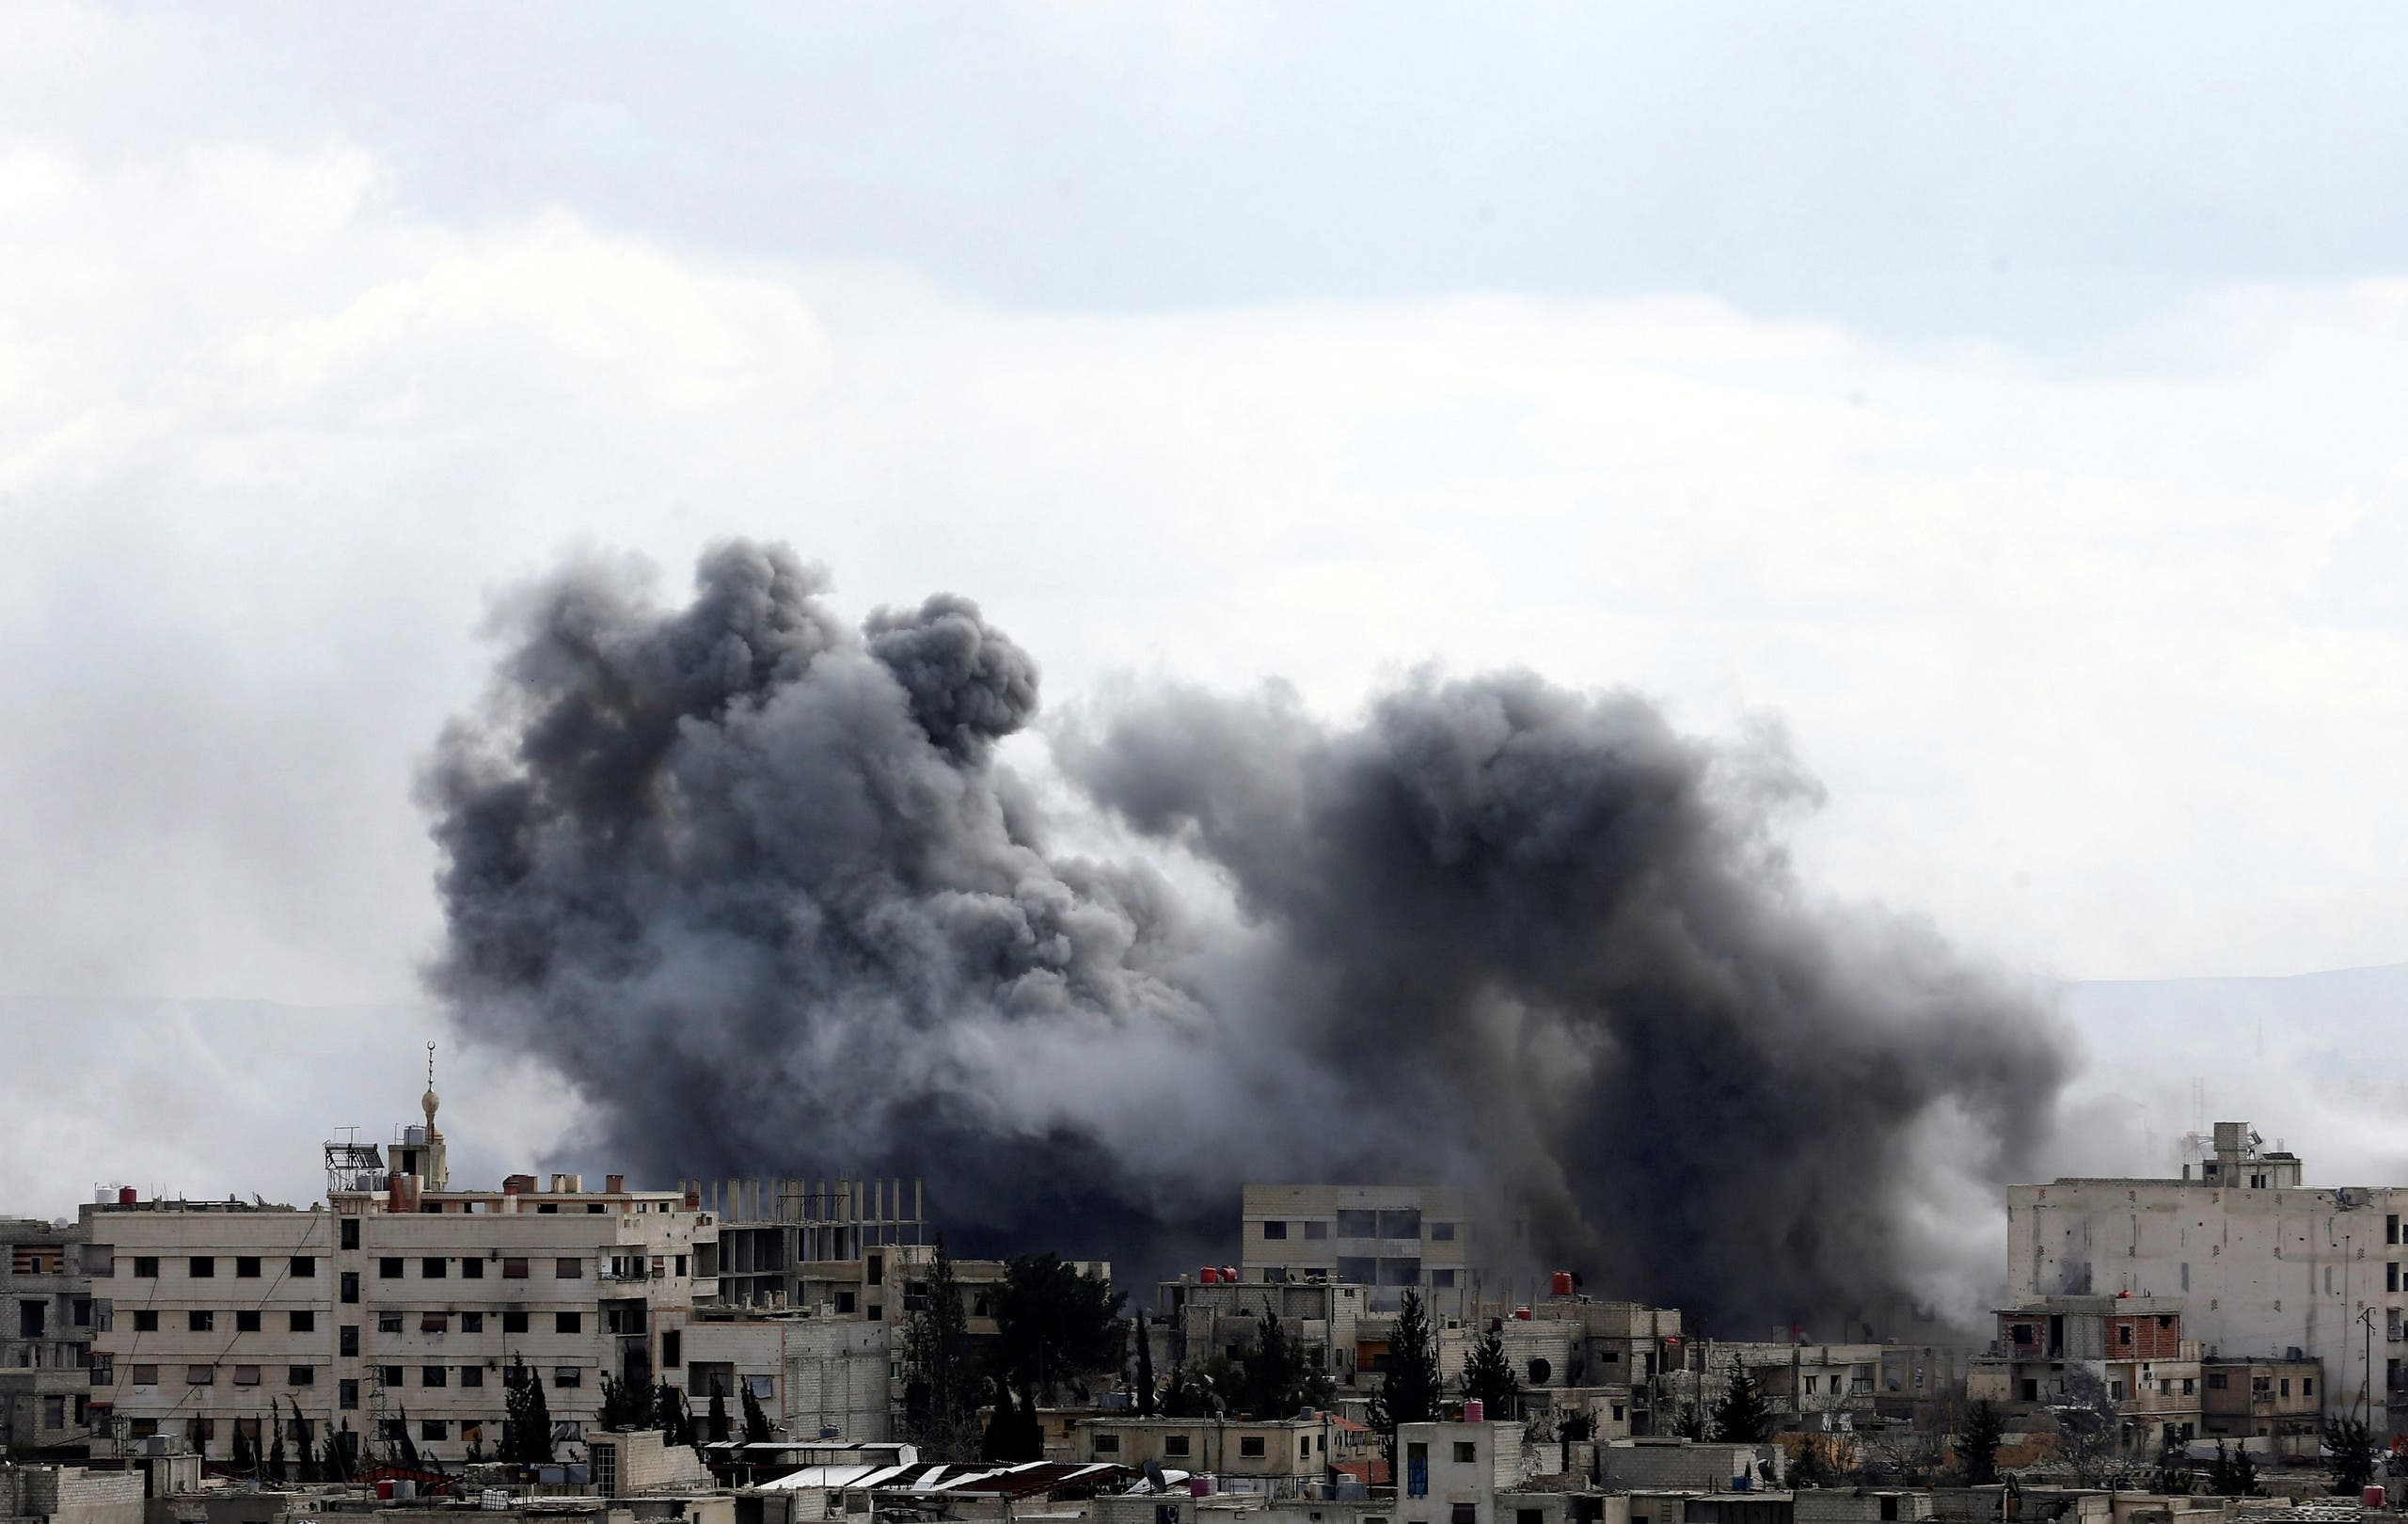 Smoke rises from the besieged Eastern Ghouta in Damascus. (Reuters)